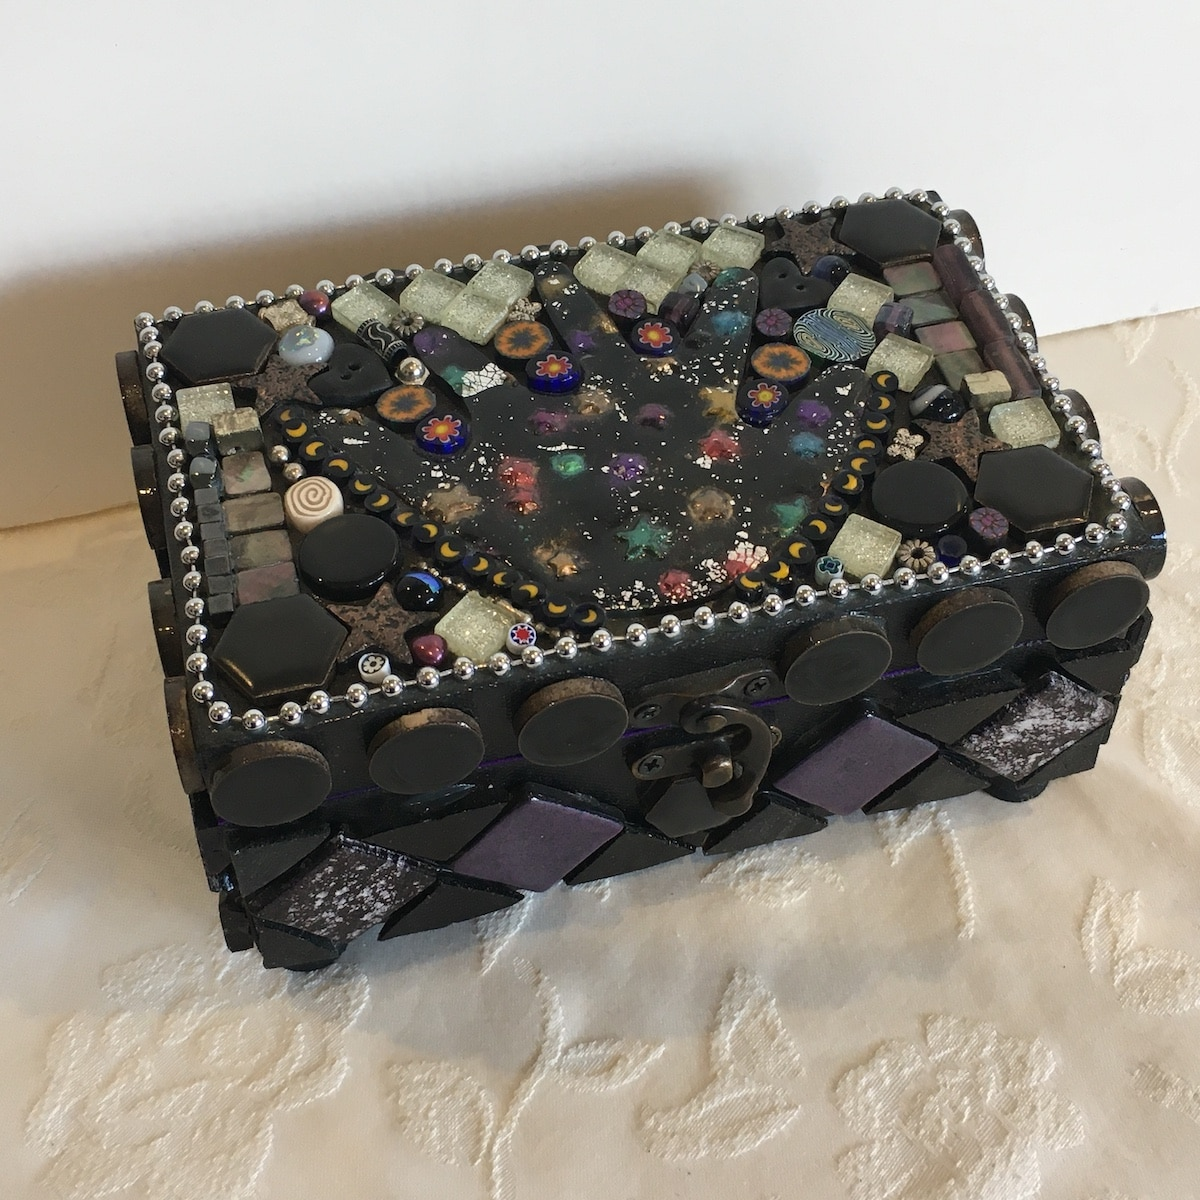 Celestial Magic Box By Amethyst Moon Art